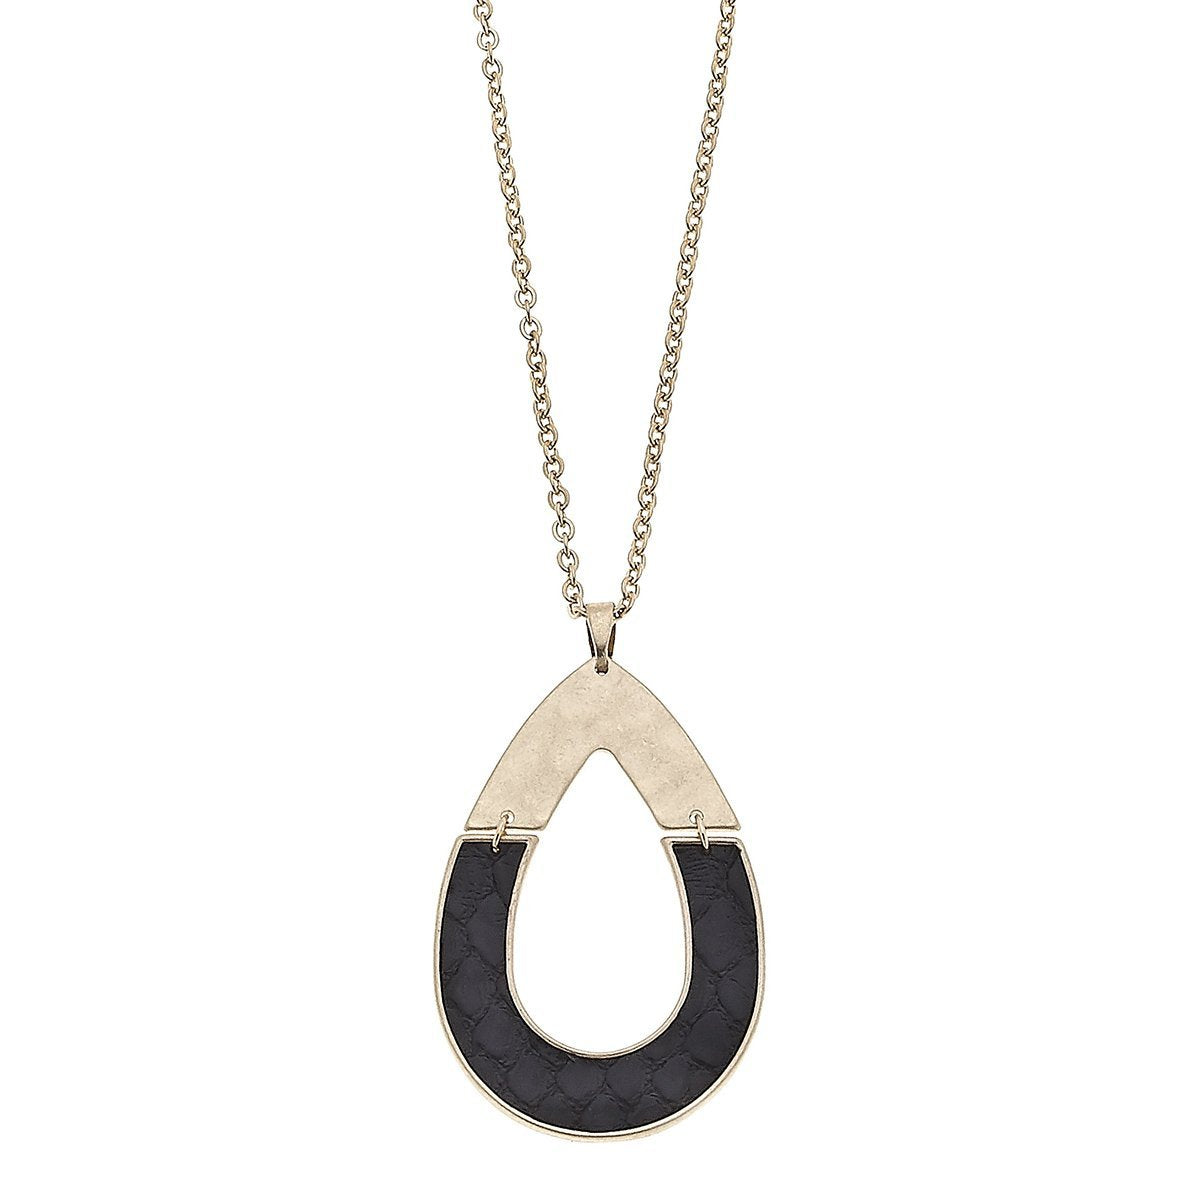 Harlow Pendant Necklace in Black Leather